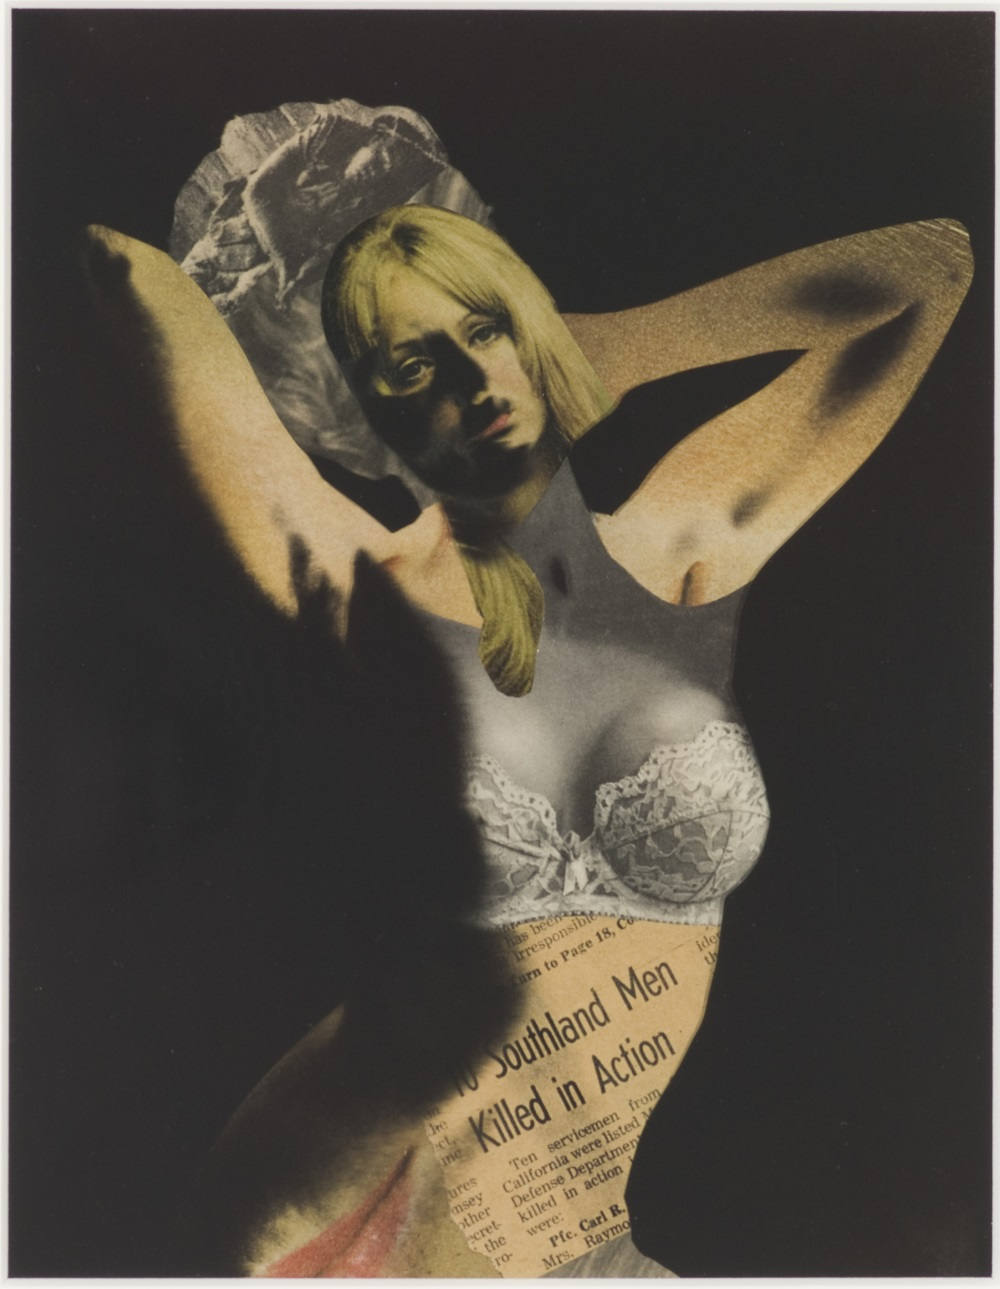 Robert Heinecken, V. N. Pin Up, 1968. Collection of the Museum of Contemporary Art, Chicago.